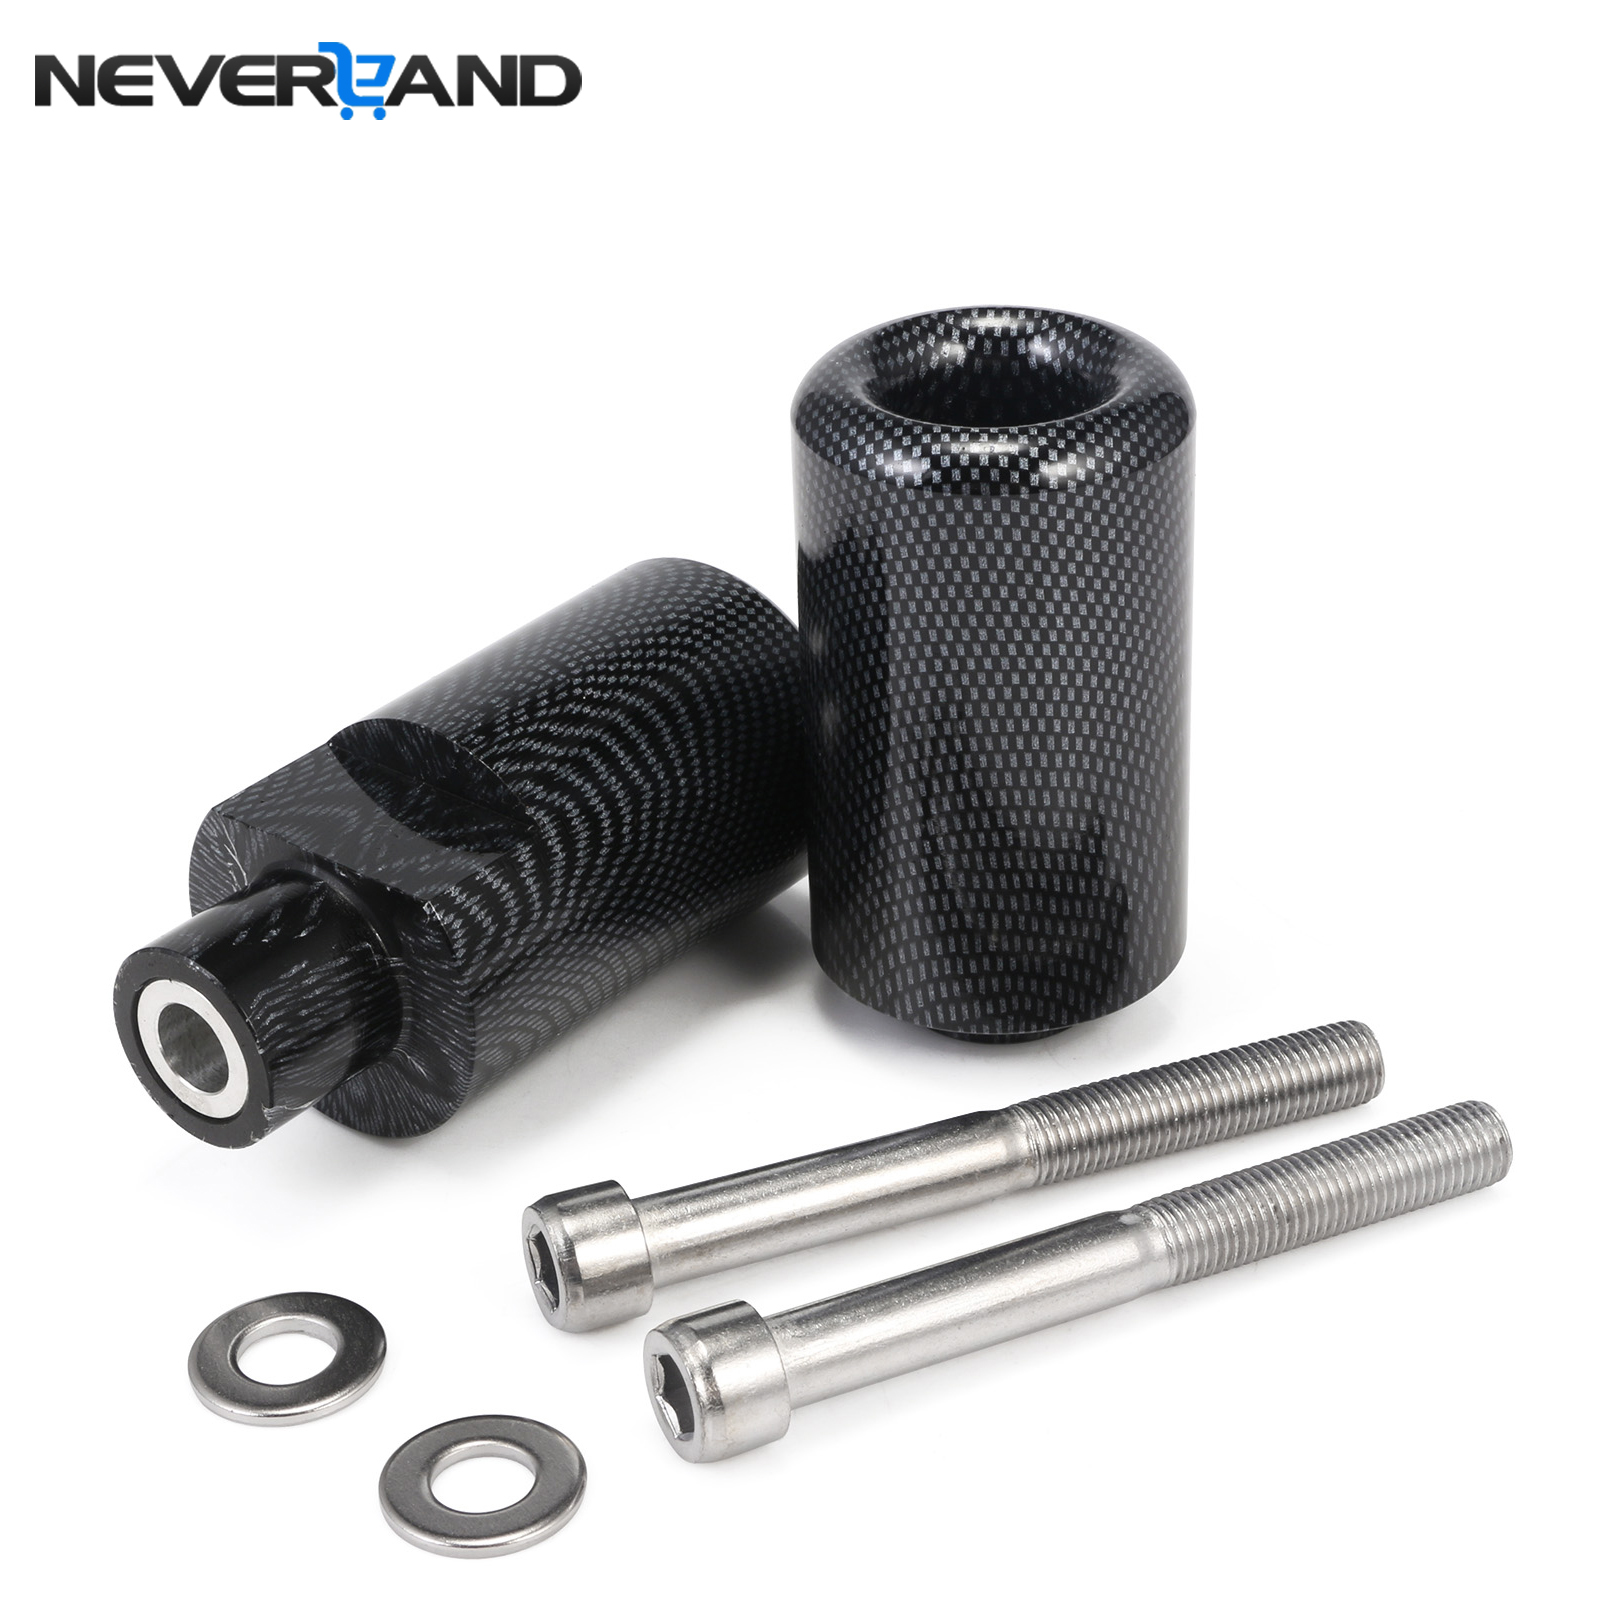 Motorcycle Frame Sliders Falling Crash Protector for Suzuki GSXR600 GSXR750 GSXR 600 750 2004-2005 Black Carbon Fiber D30 for suzuki gsxr600 gsxr750 gsxr 600 750 k4 tank side cover panels fairing 2004 2005 2pcs carbon fiber motorcycle parts